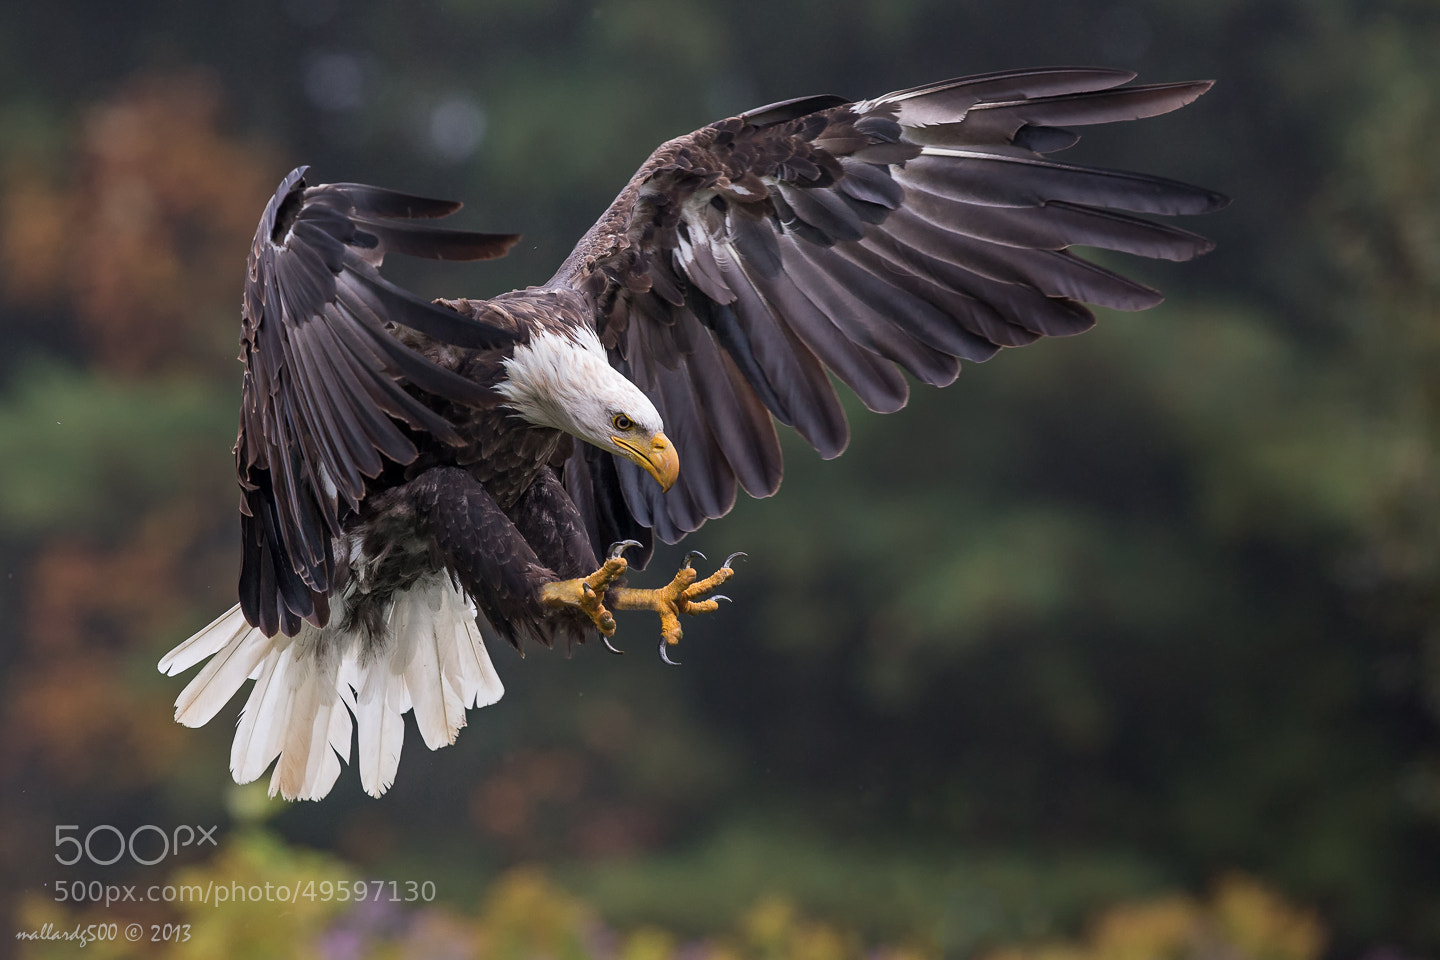 Photograph All about Talons by Phoo (mallardg500) Chan on 500px